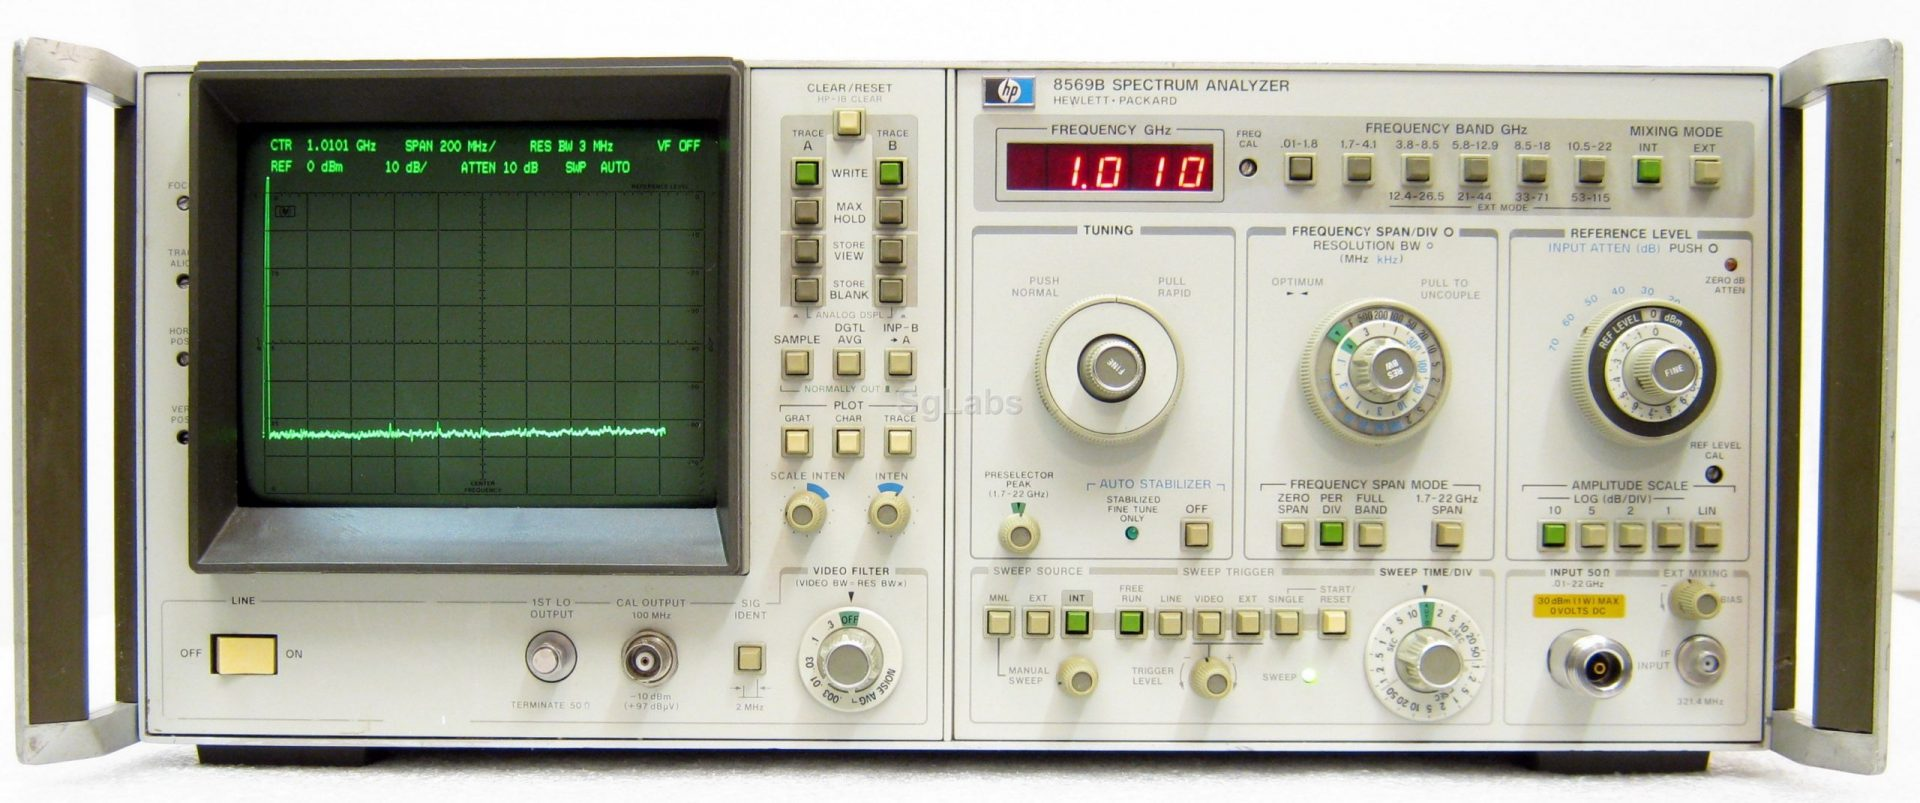 Agilent 8569B 10 Mhz To 22 Ghz Microwave Spectrum Analyzer